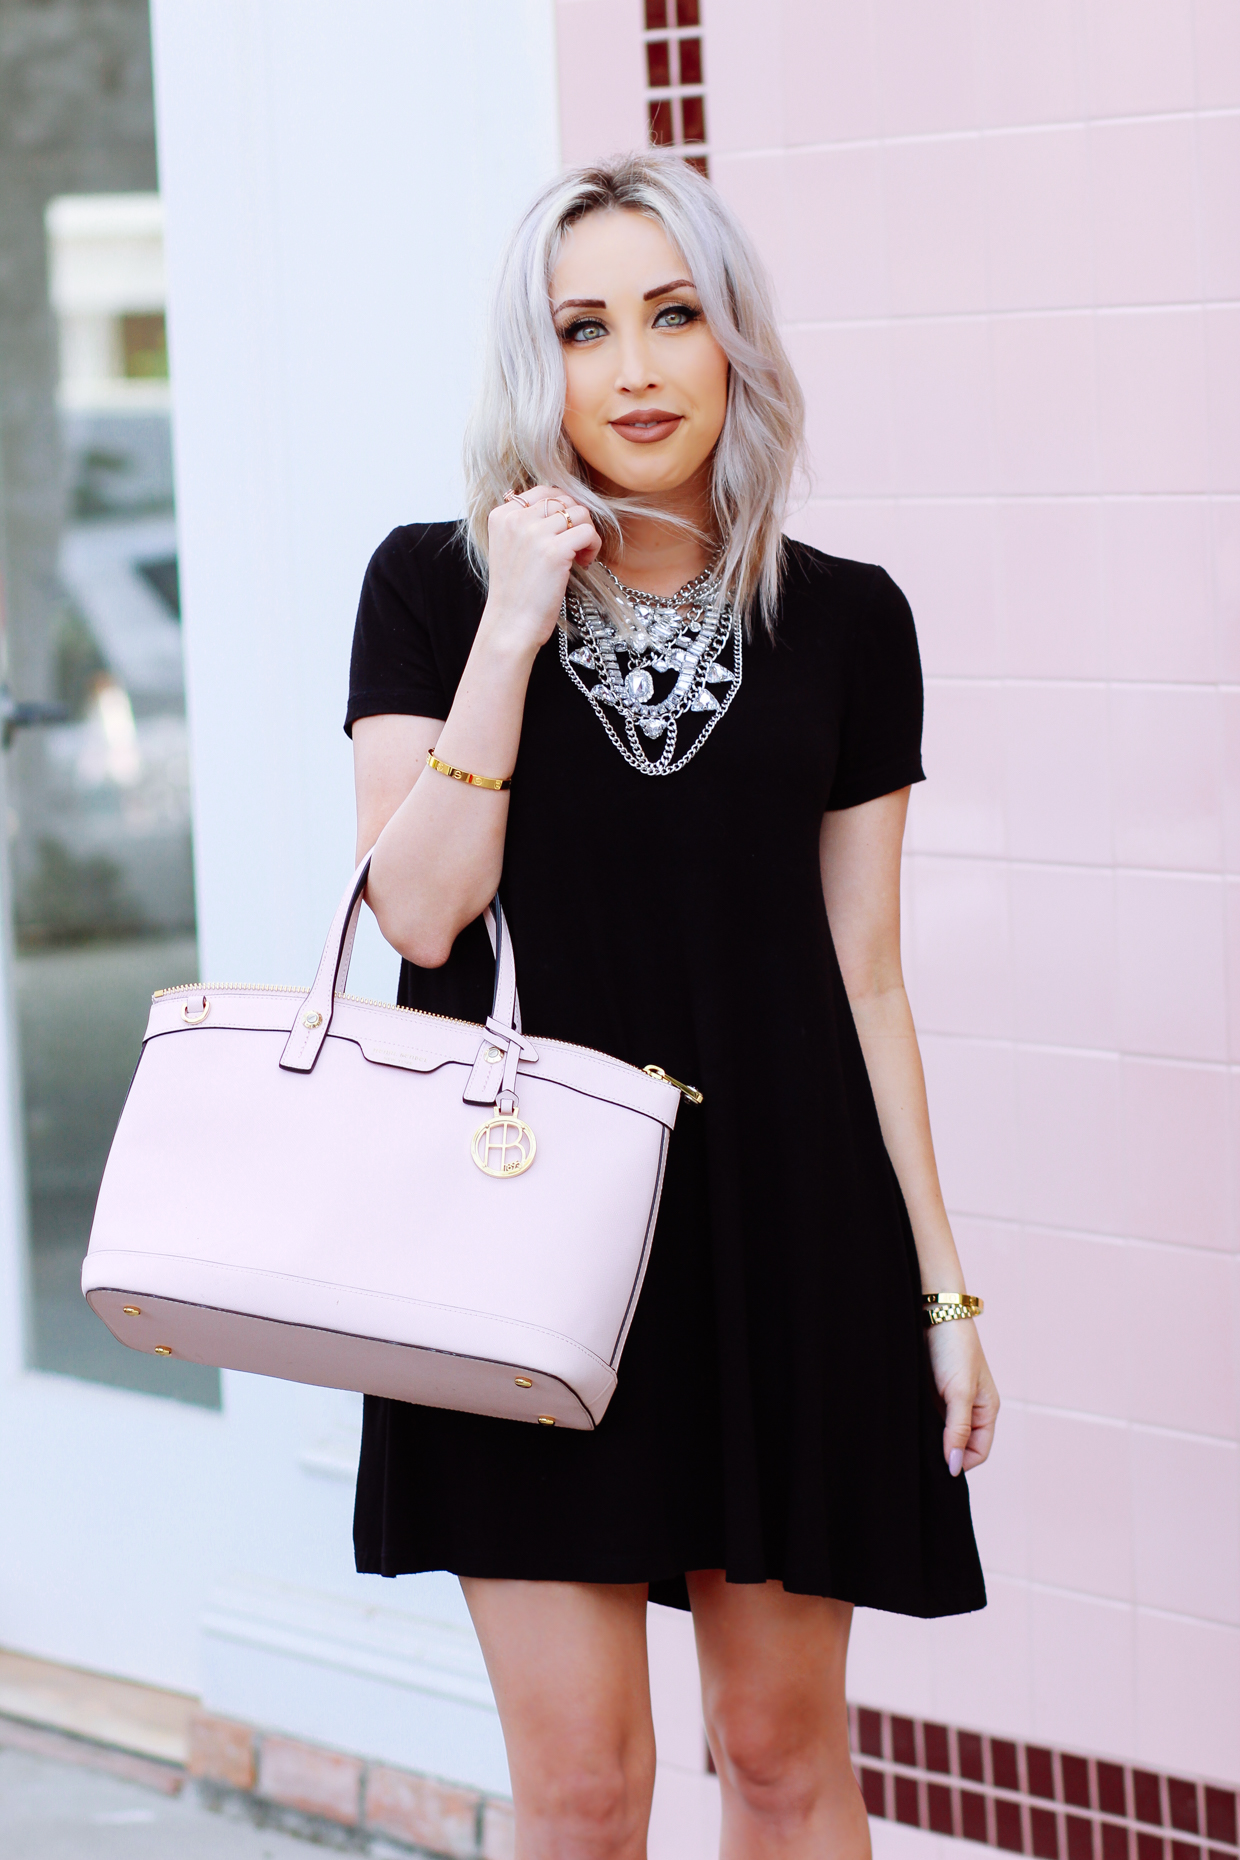 Blondie in the City | Little Black Dress, Pink @henribendel Bag, Statement Necklace | Alfred Tea Room, West Hollywood, Melrose Place